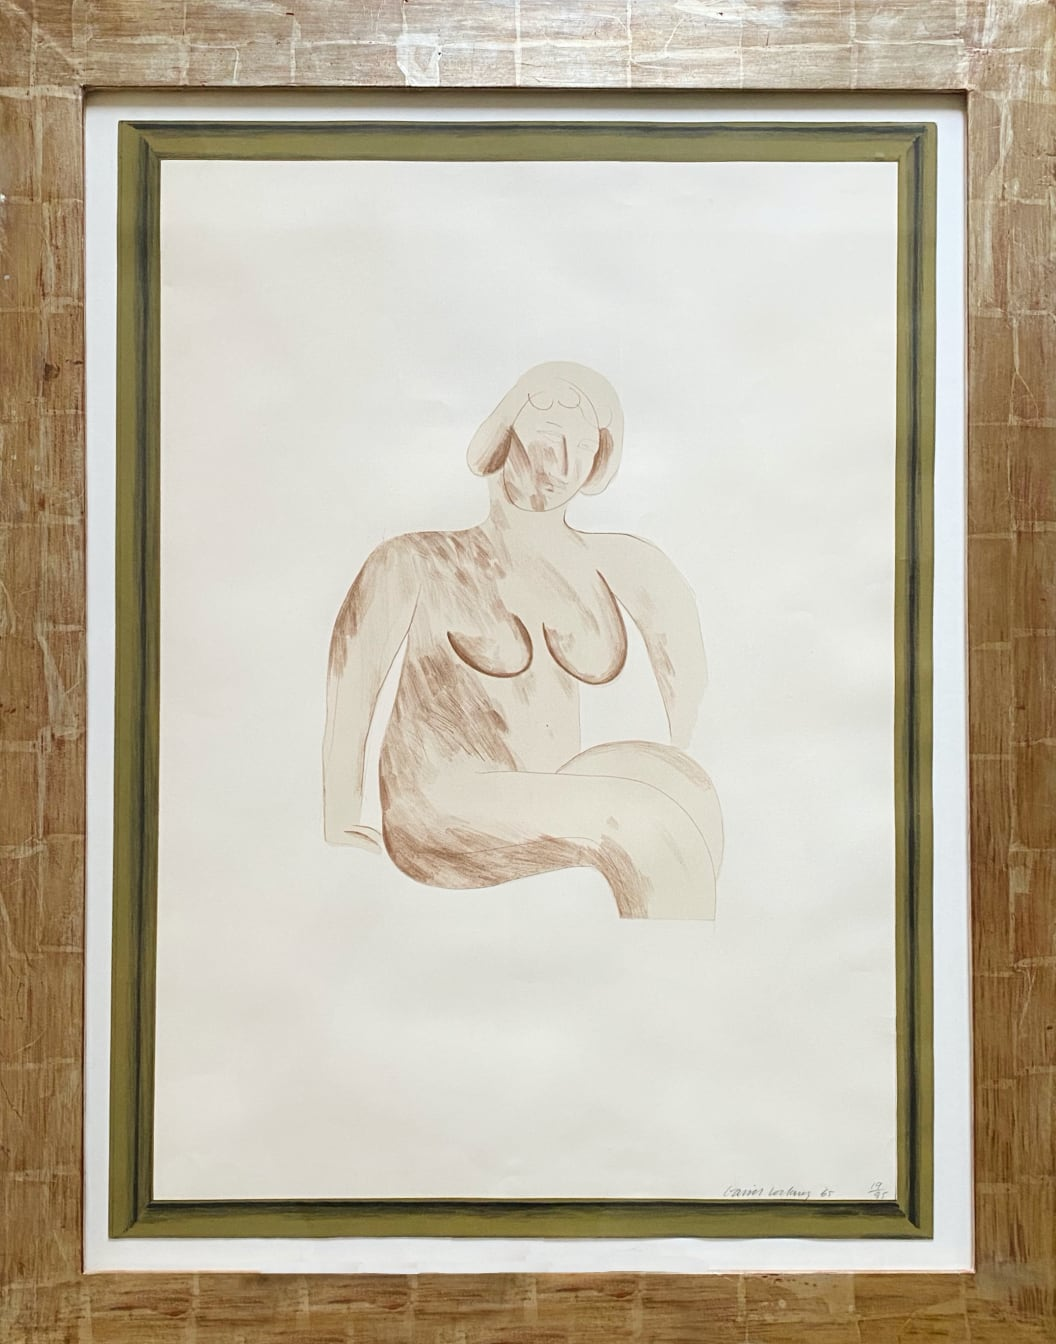 Picture of a Simple Framed Traditional Nude Drawing by David Hockney